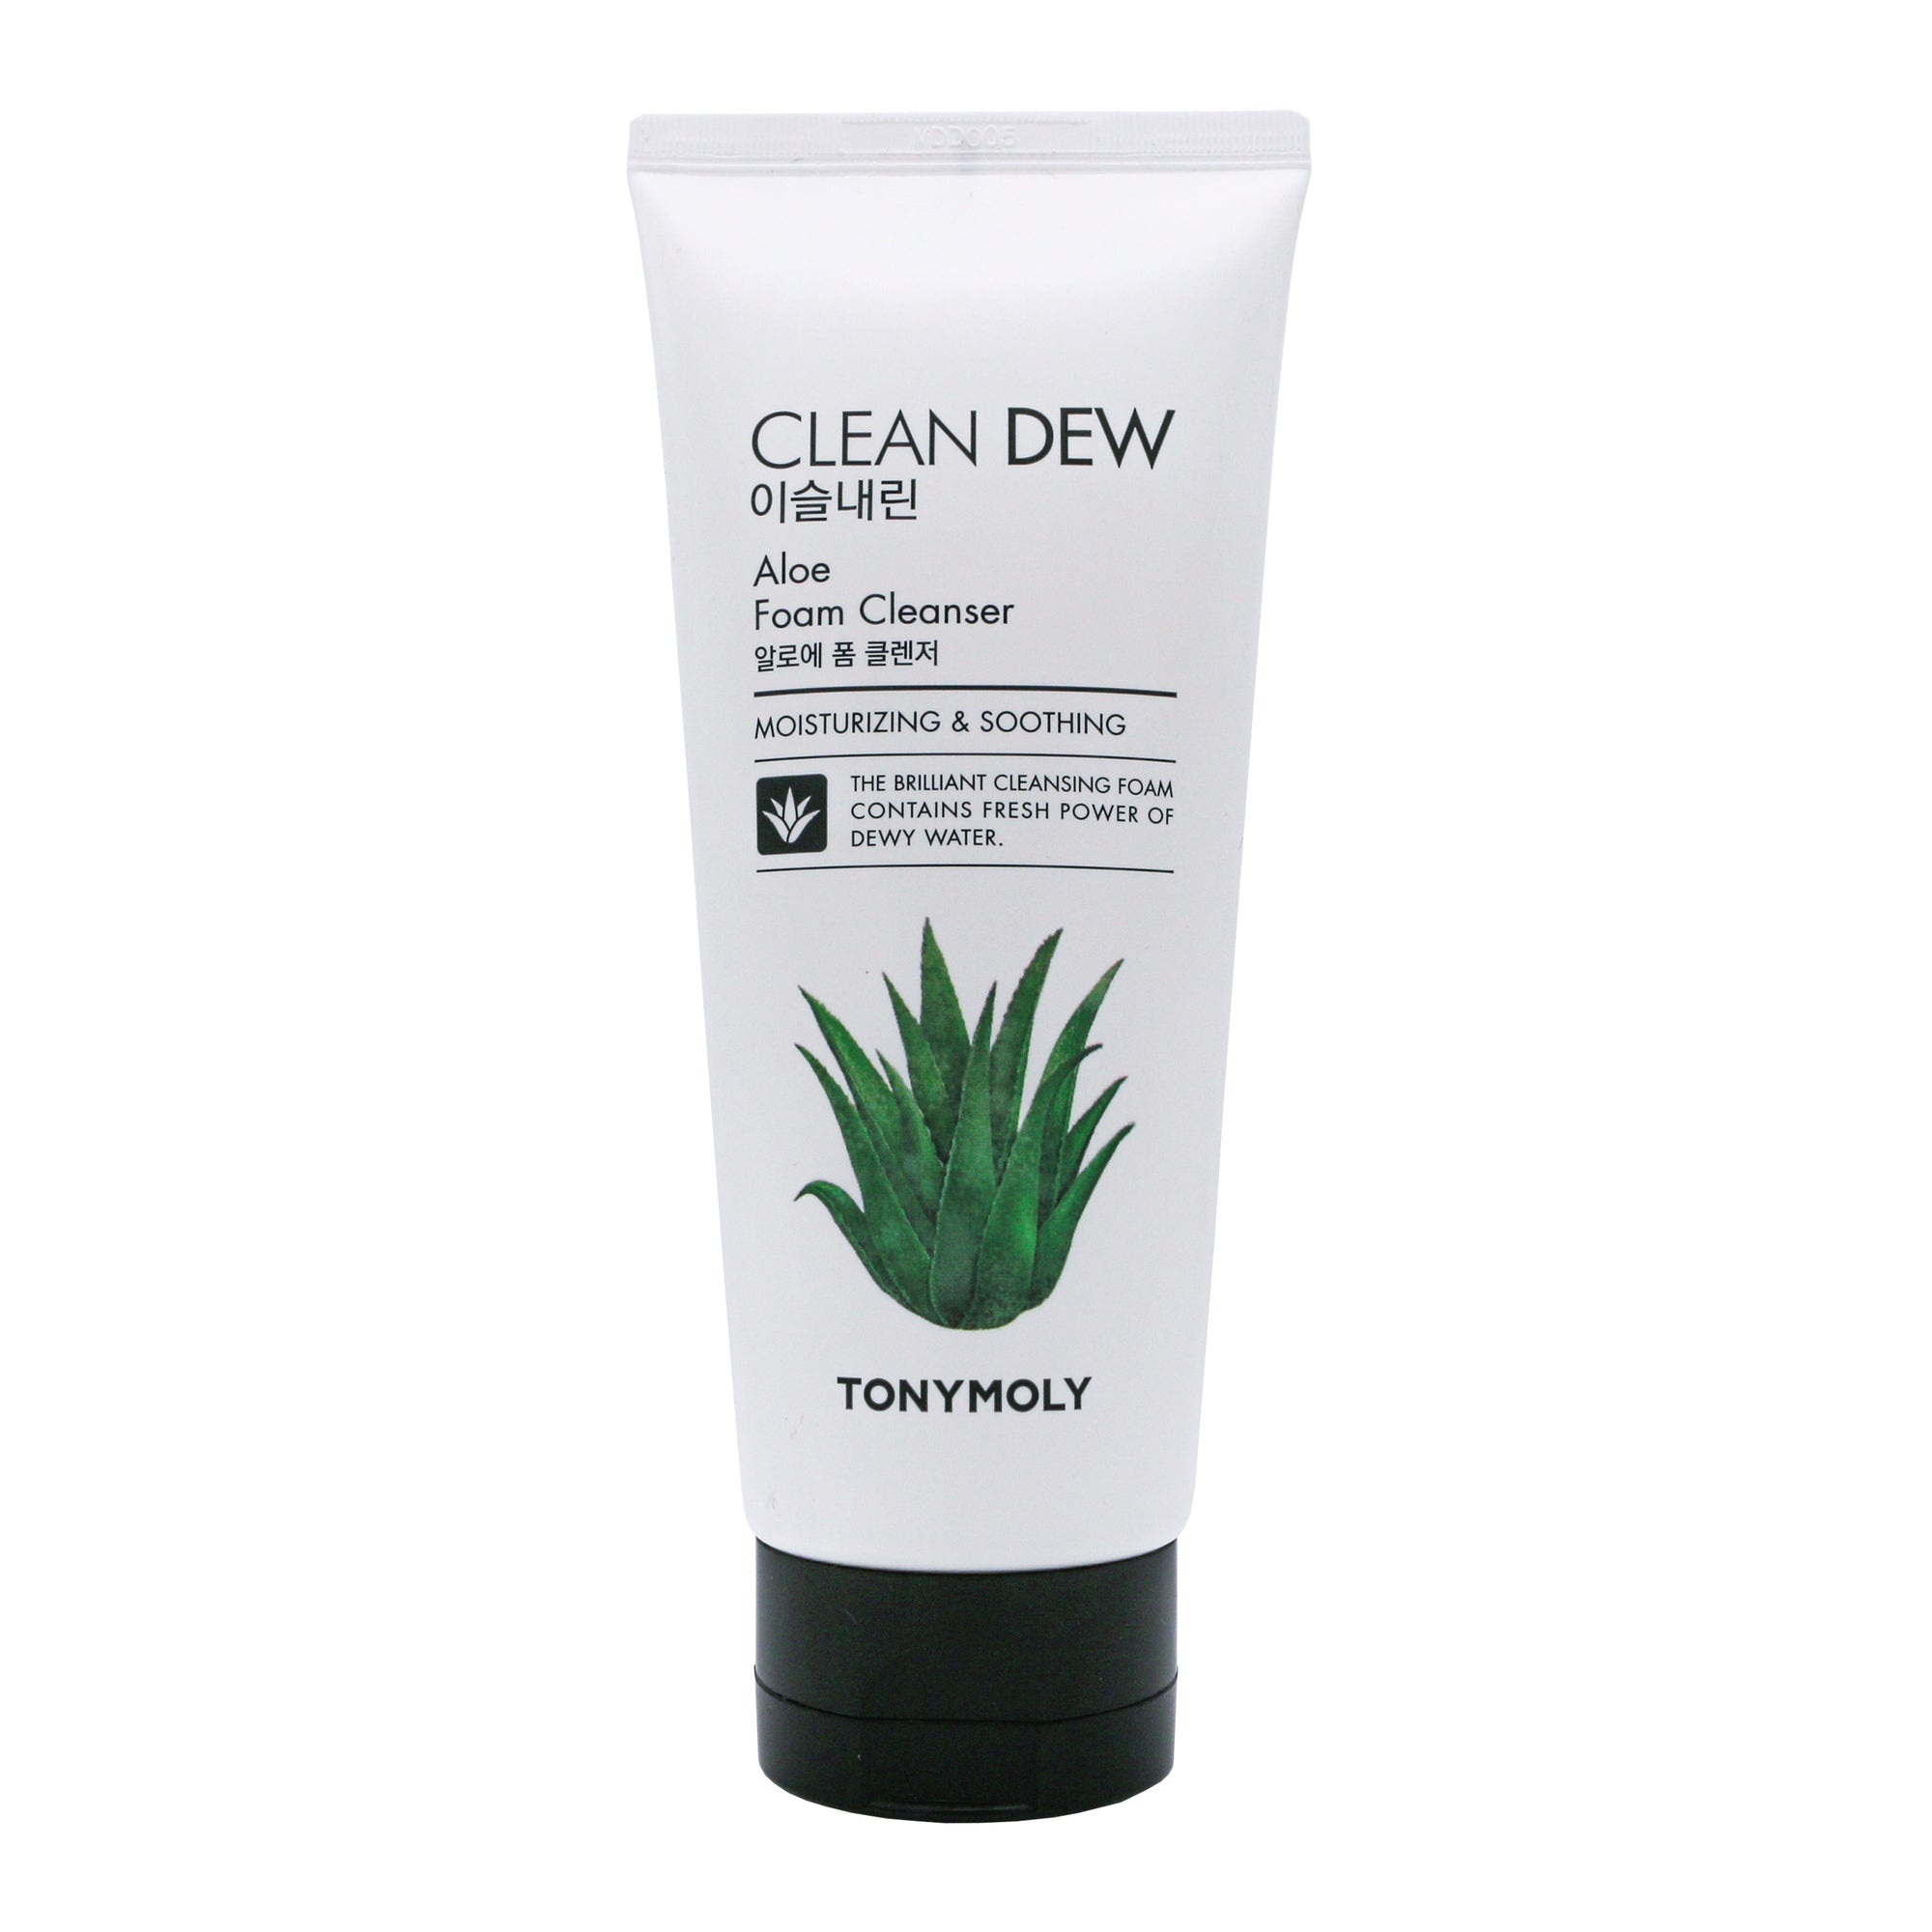 TONYMOLY Clean Dew Aloe Foam Cleanser | Moisturising ¦ Face ¦ Korean Skin Care - 180ml